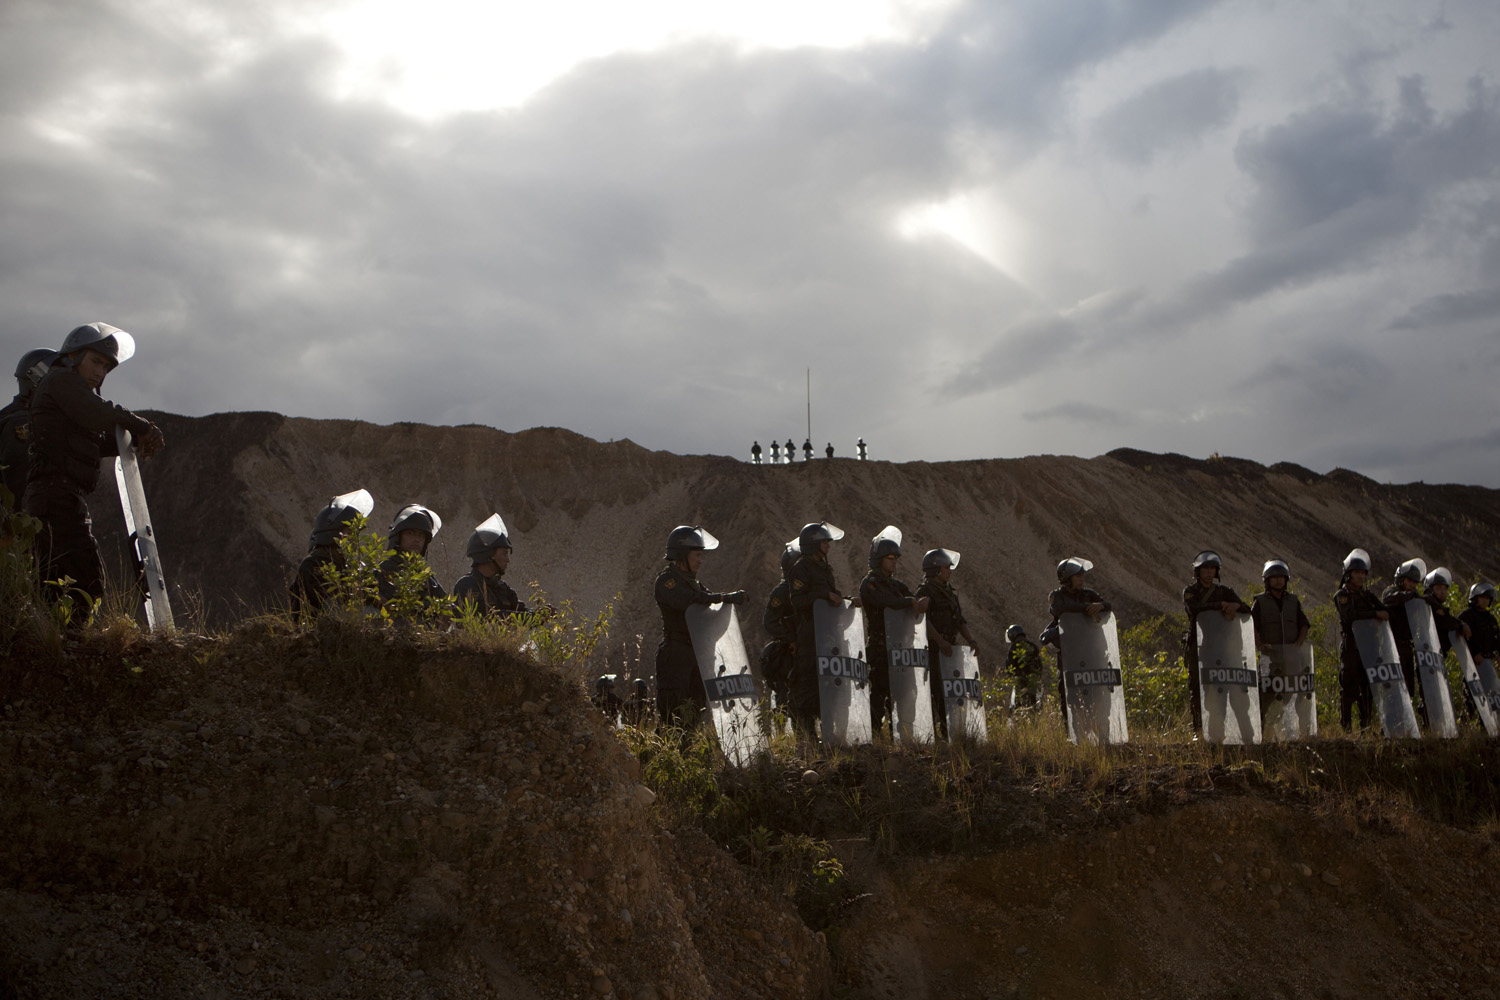 Apr. 28, 2014. Riot police stand guard at an illegal mining operation in Huepetuhe district in Peru's Madre de Dios region in Peru.